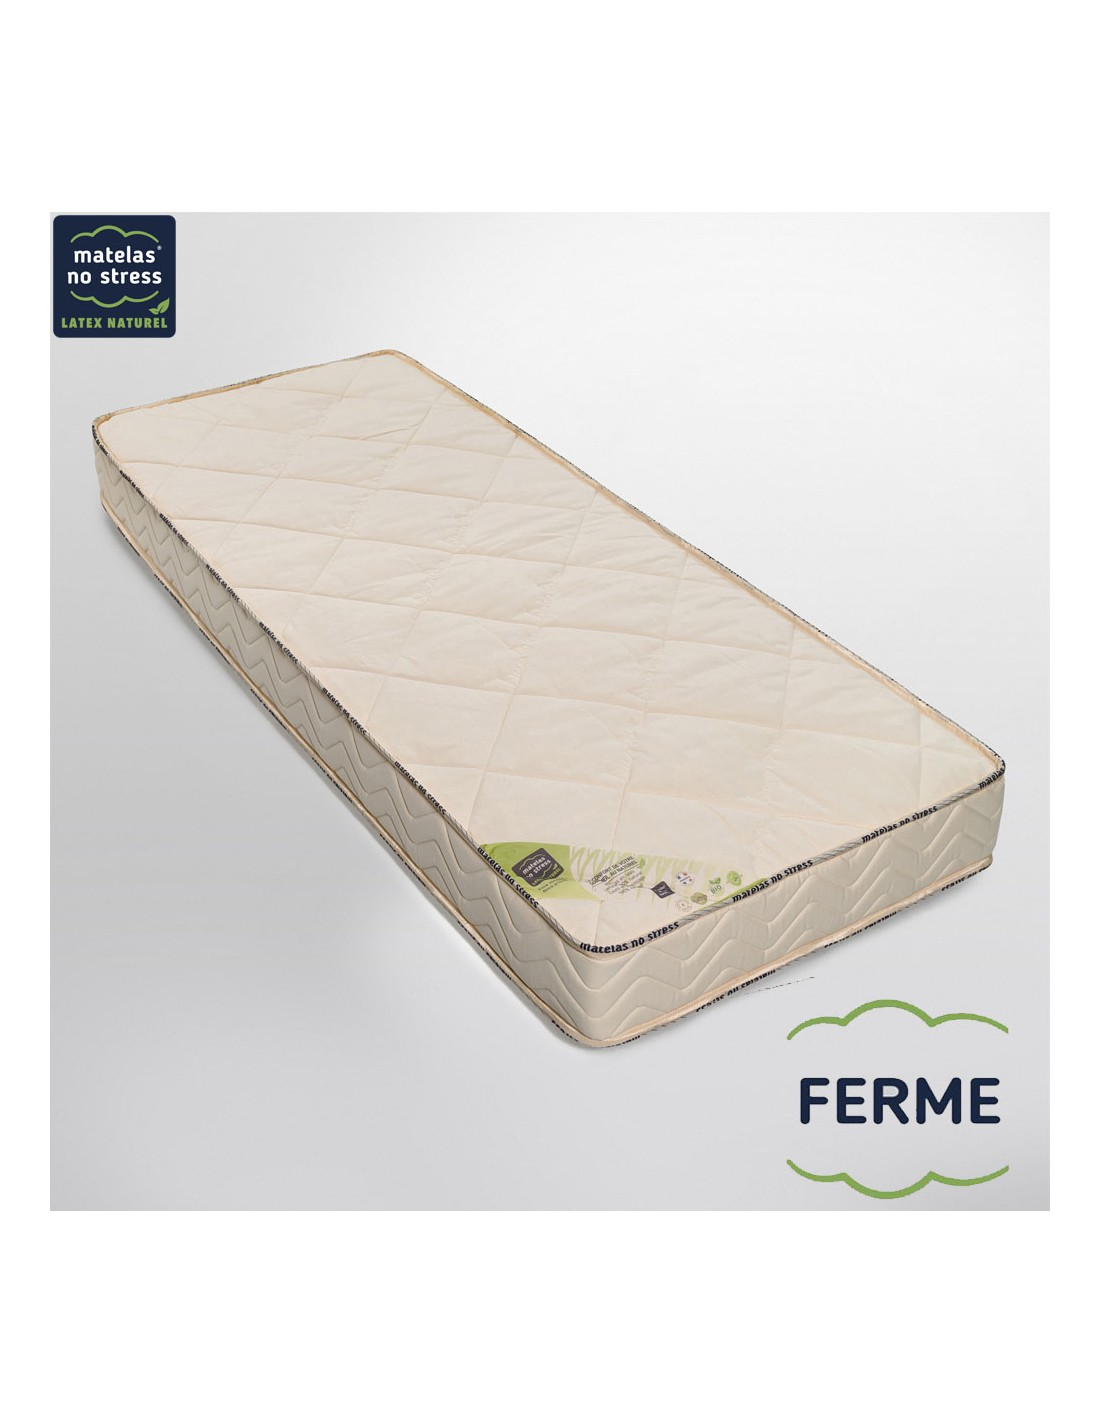 matelas bio latex naturel 120x190 l gance ferme 18 cm. Black Bedroom Furniture Sets. Home Design Ideas